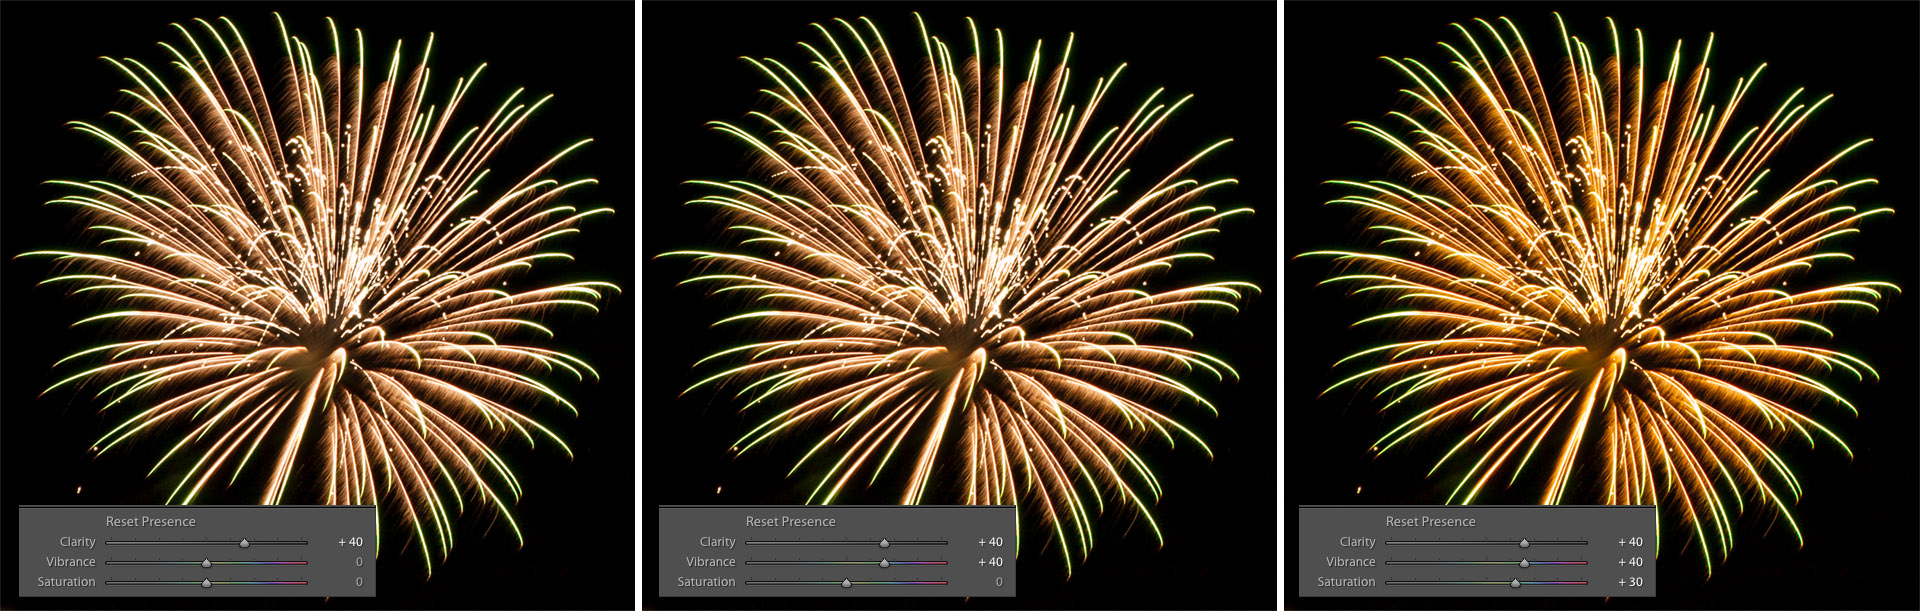 Finish Fireworks by Kevin Ames-018